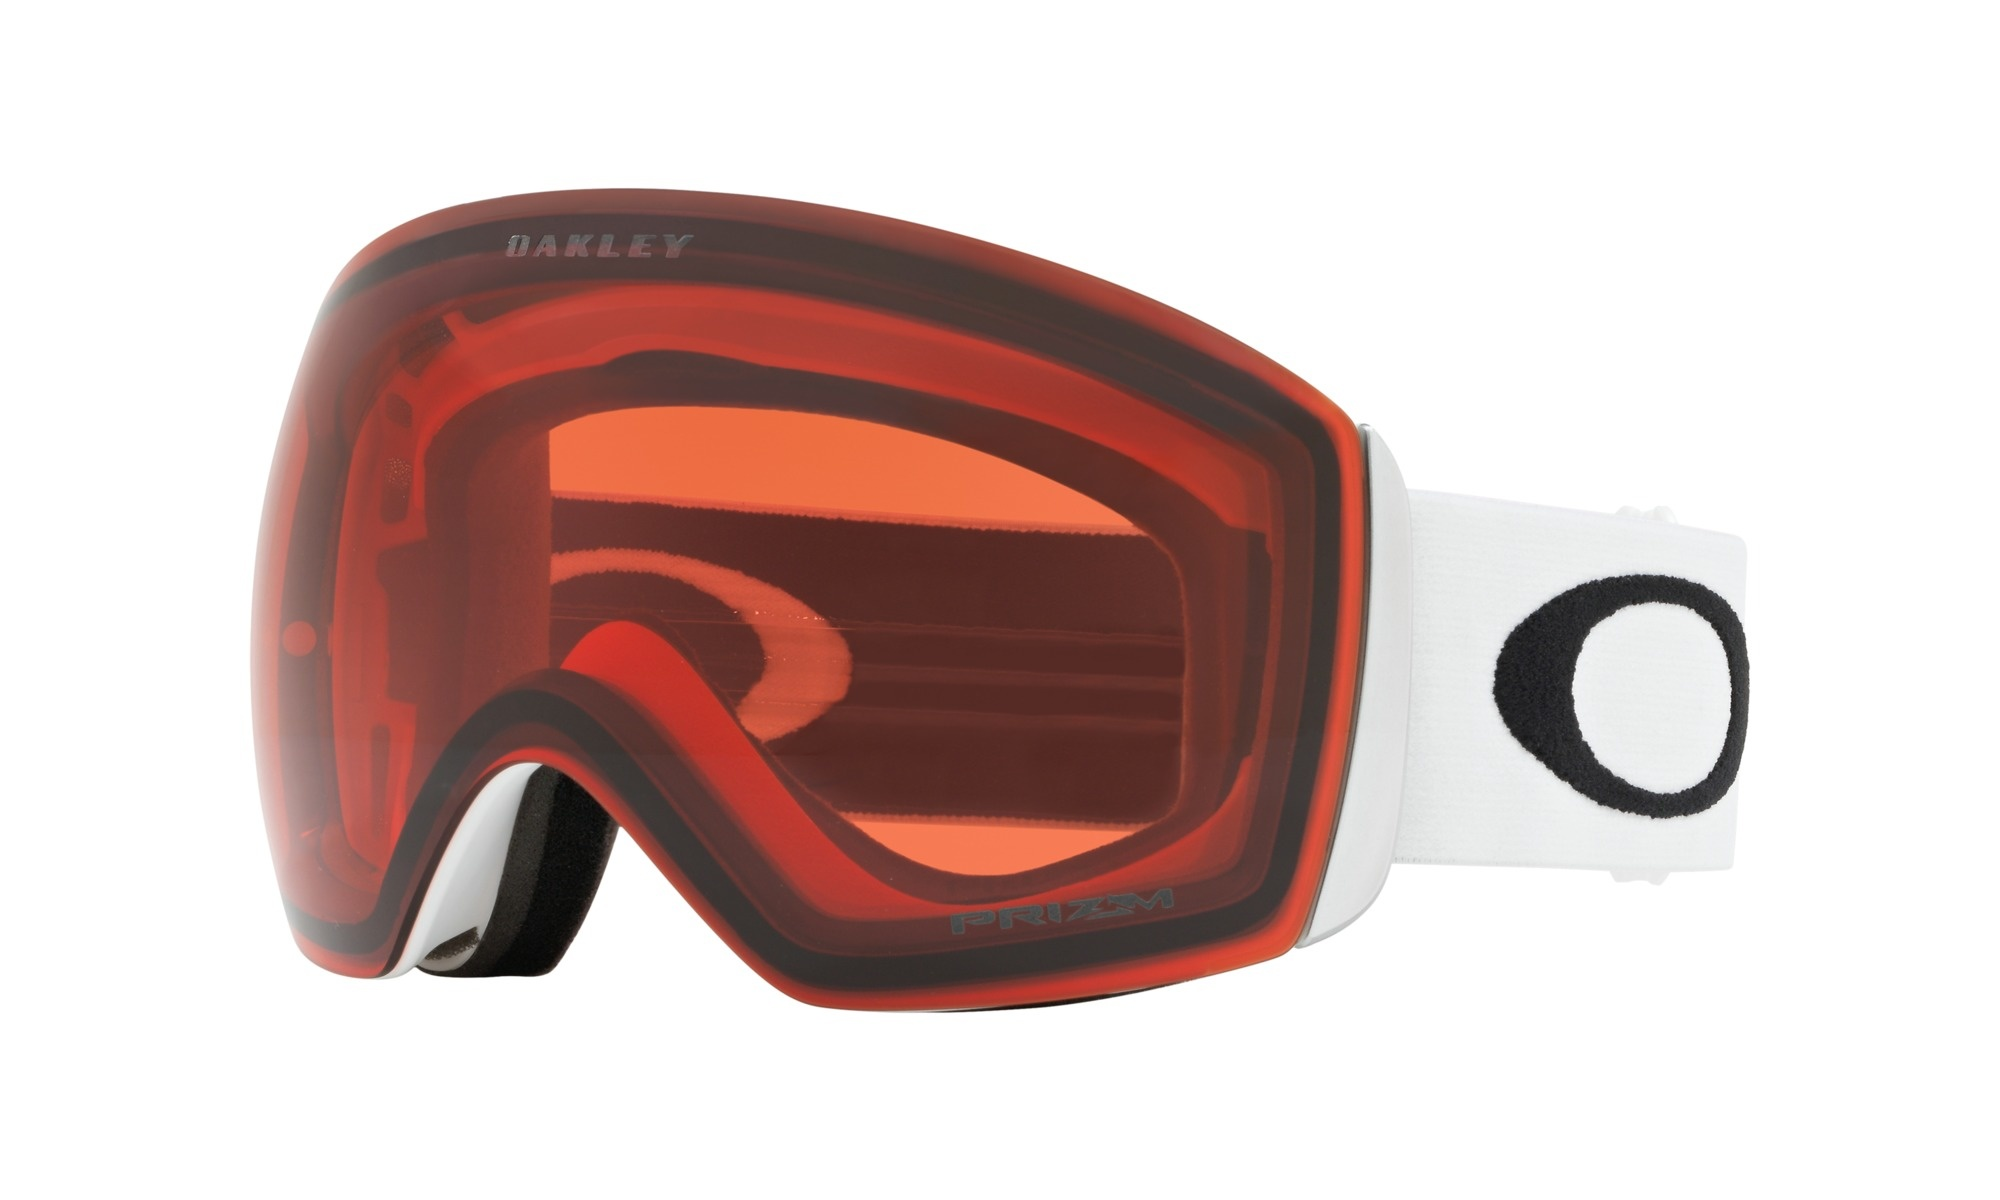 OAKLEY OAKLEY FLIGHT DECK SNOW GOGGLE